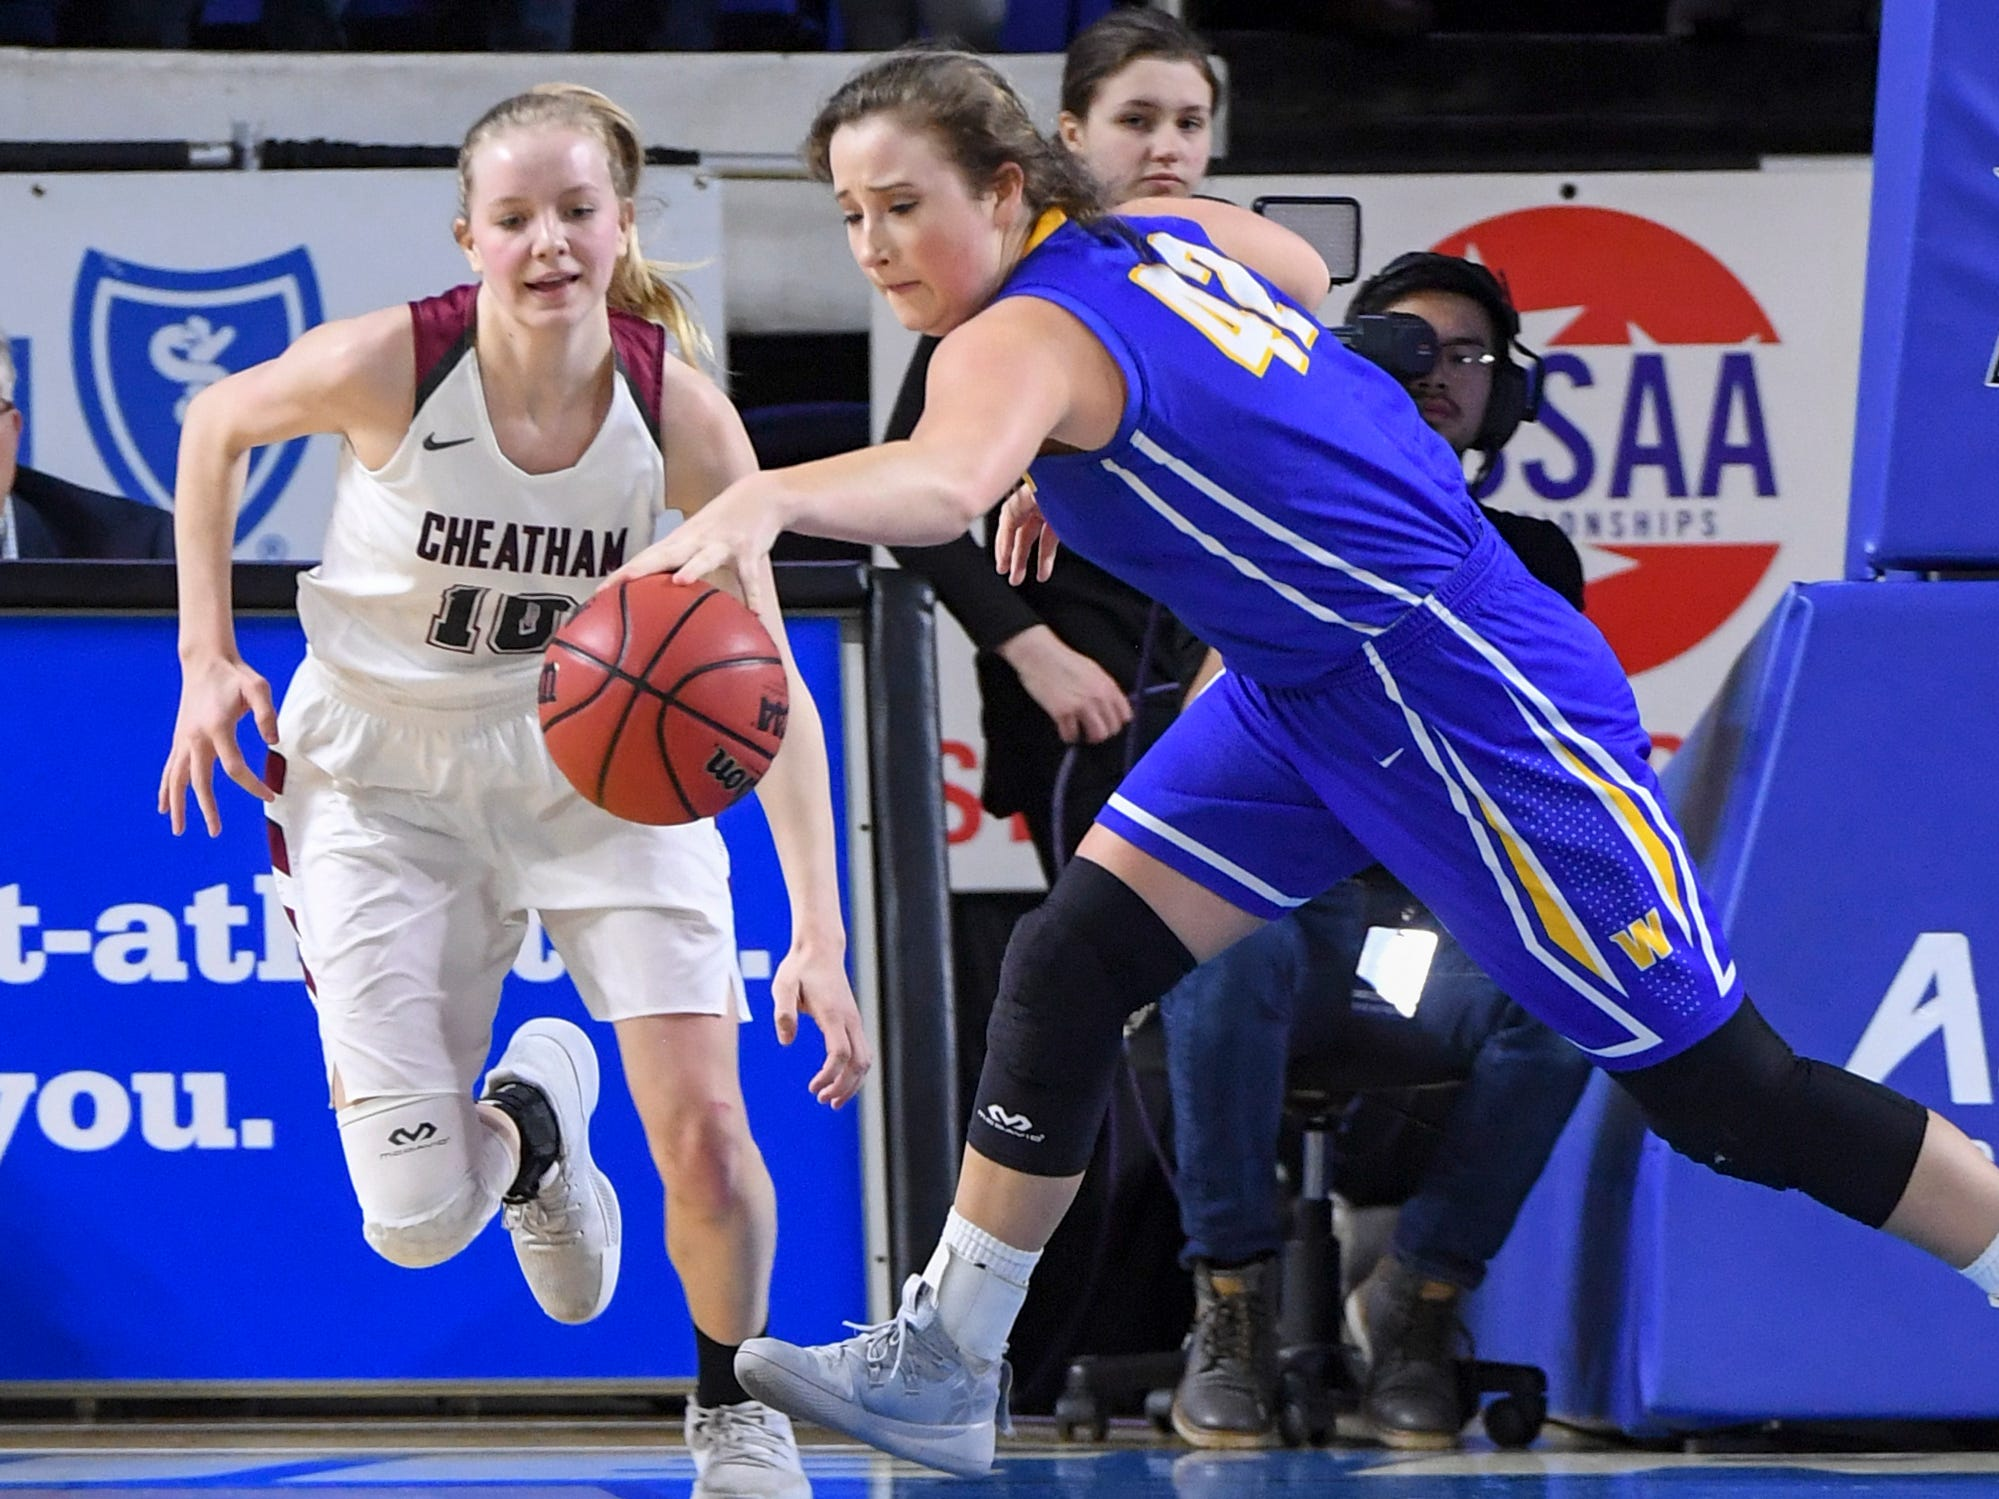 Westview's Blaine McDonald (42) reaches out to steal the ball from Cheatham County's Abbi Douglas (10) during their Class AA championship game, Saturday, March 9, 2019, in Murfreesboro.